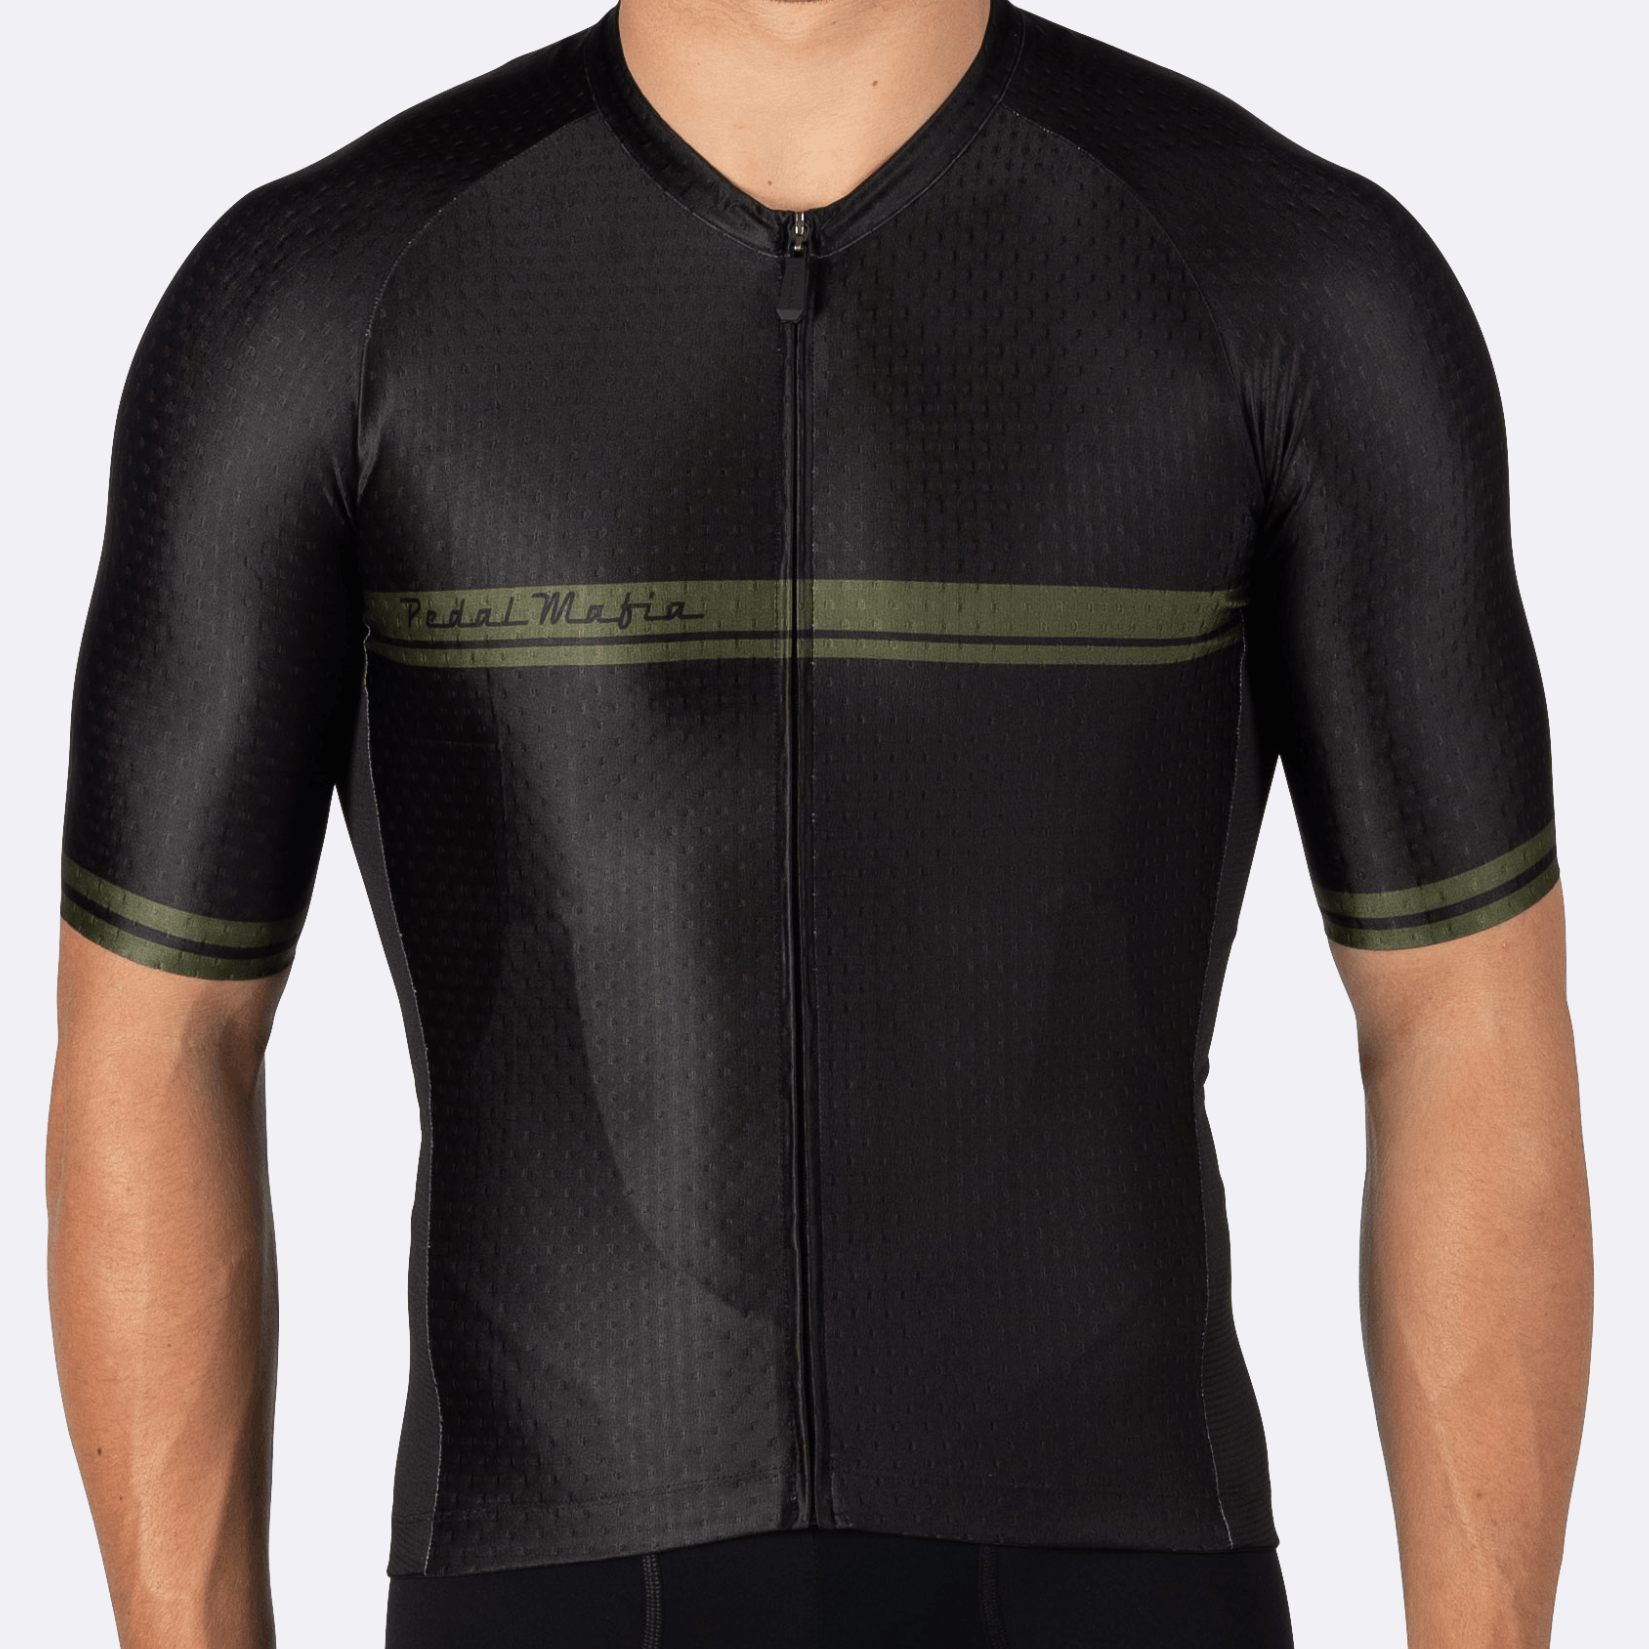 PEDAL MAFIA Core Jersey for Men - Black Olive 2.0